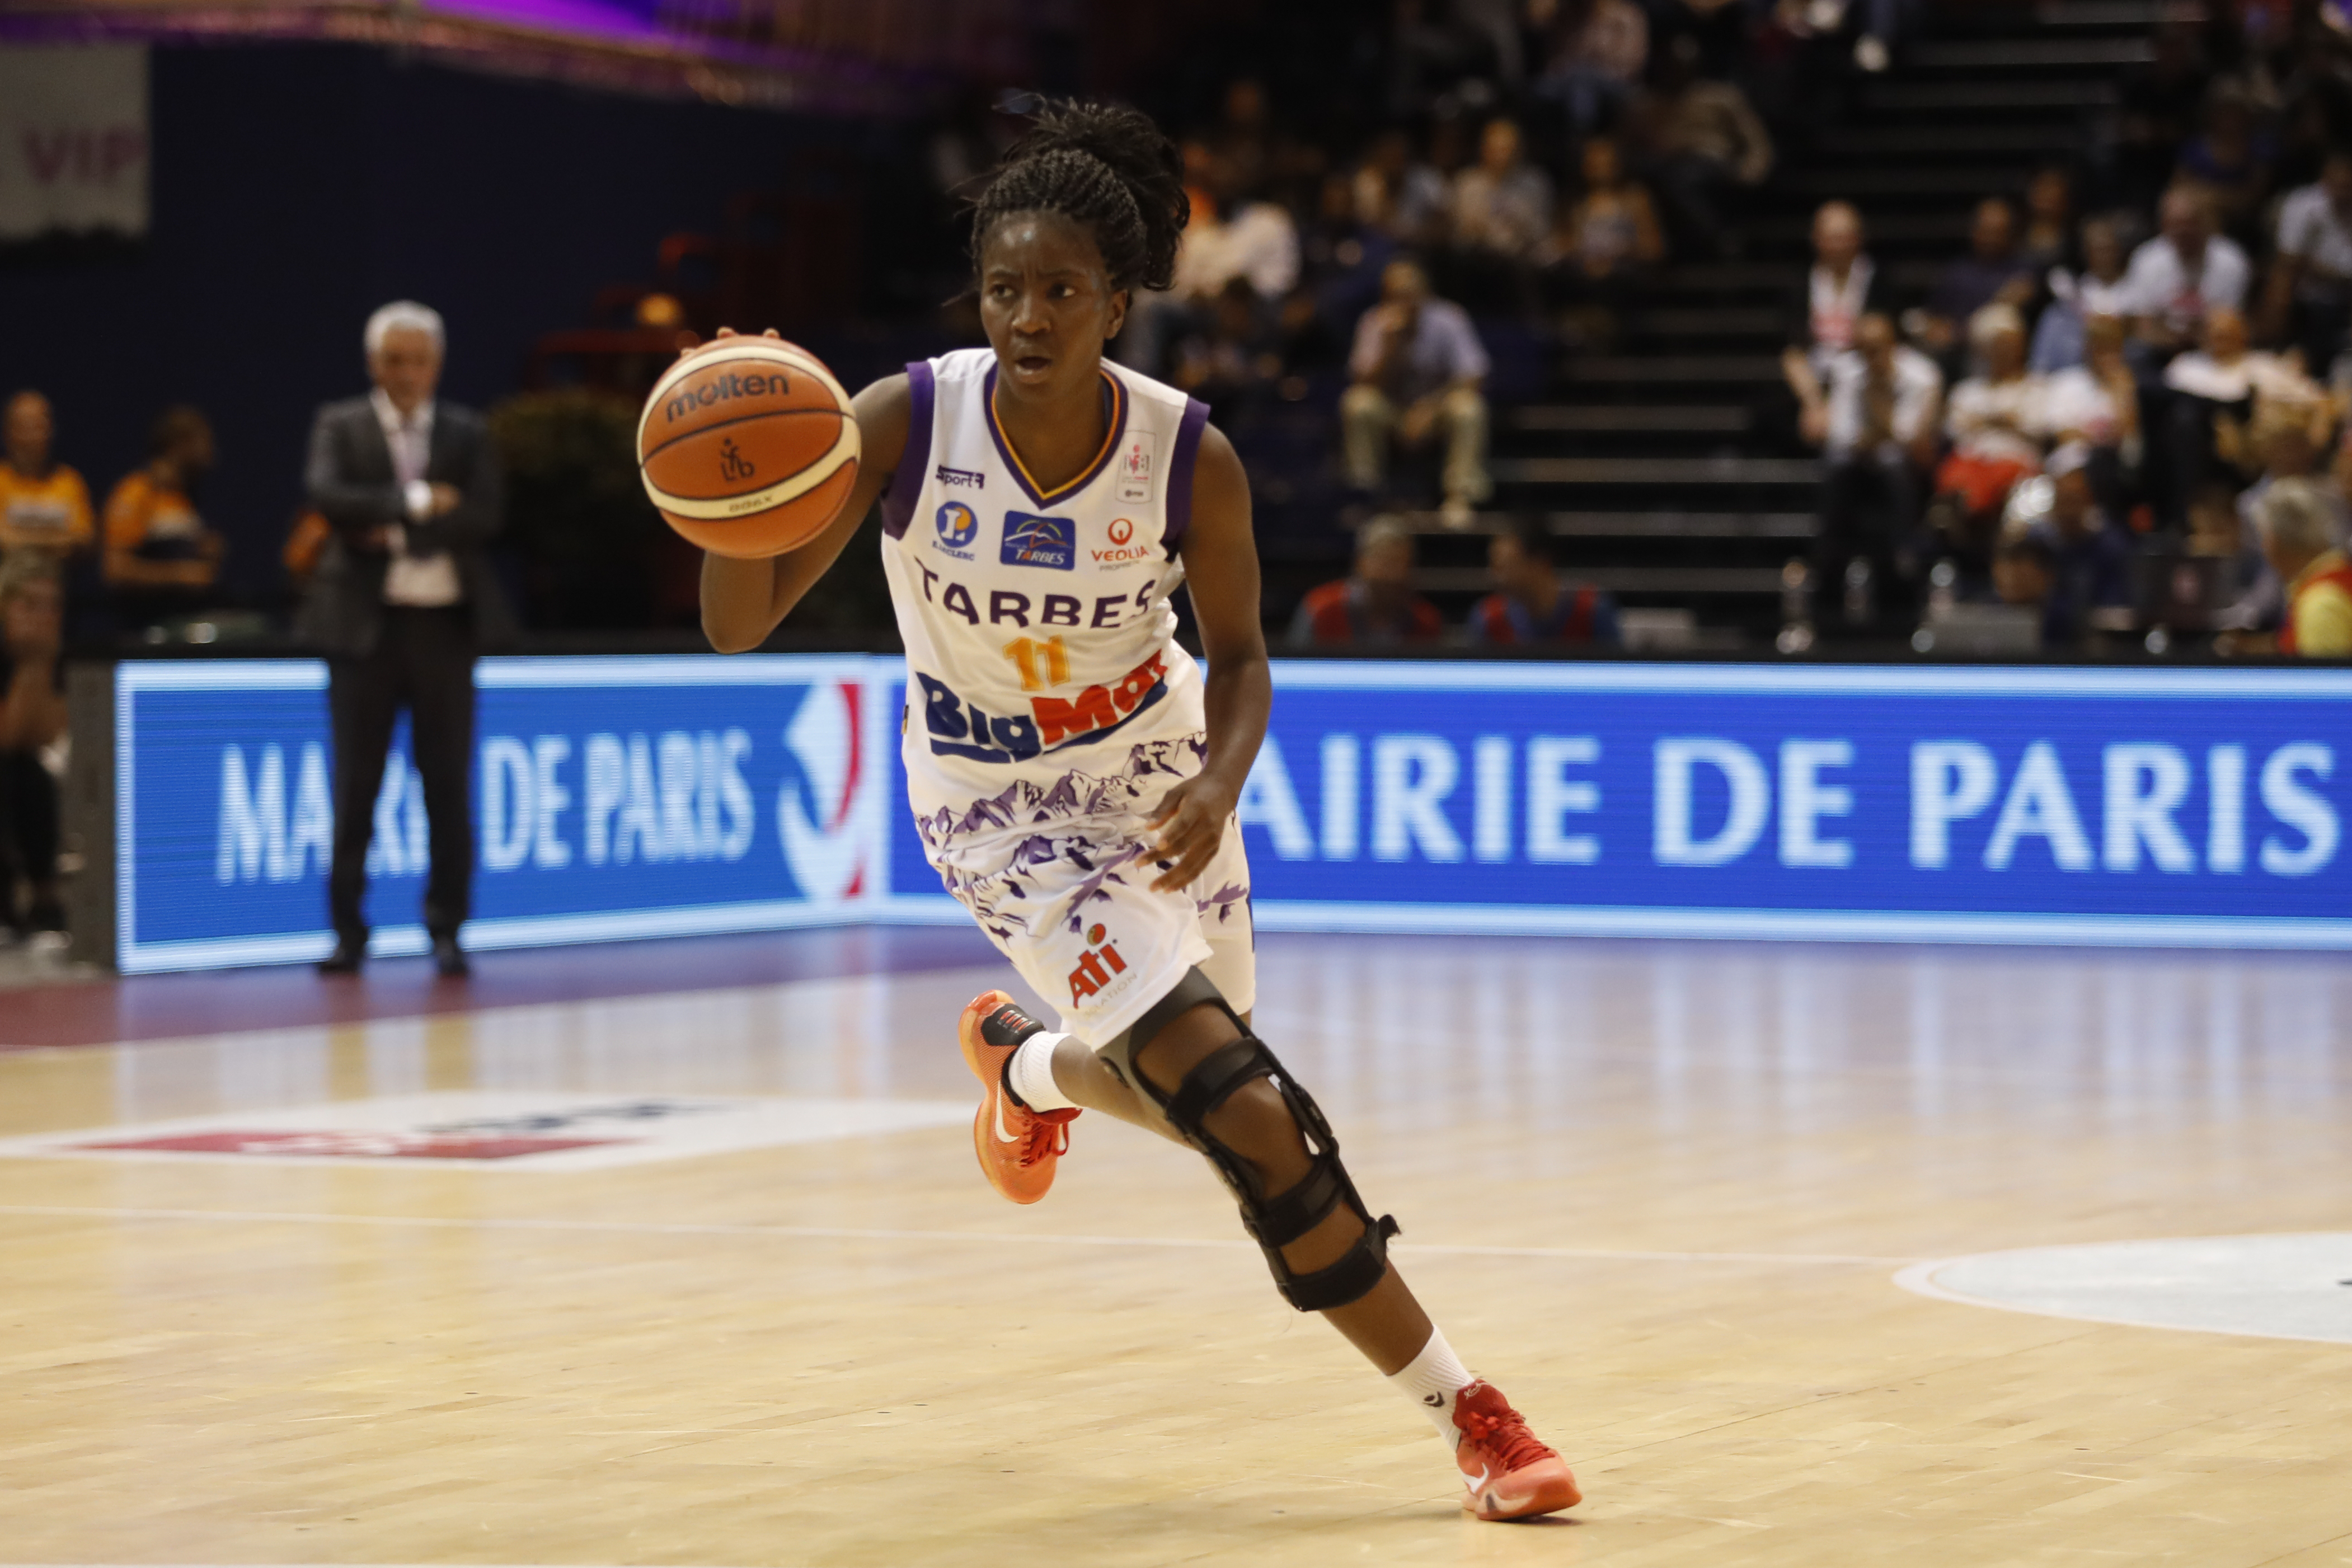 BOURGES – TARBES